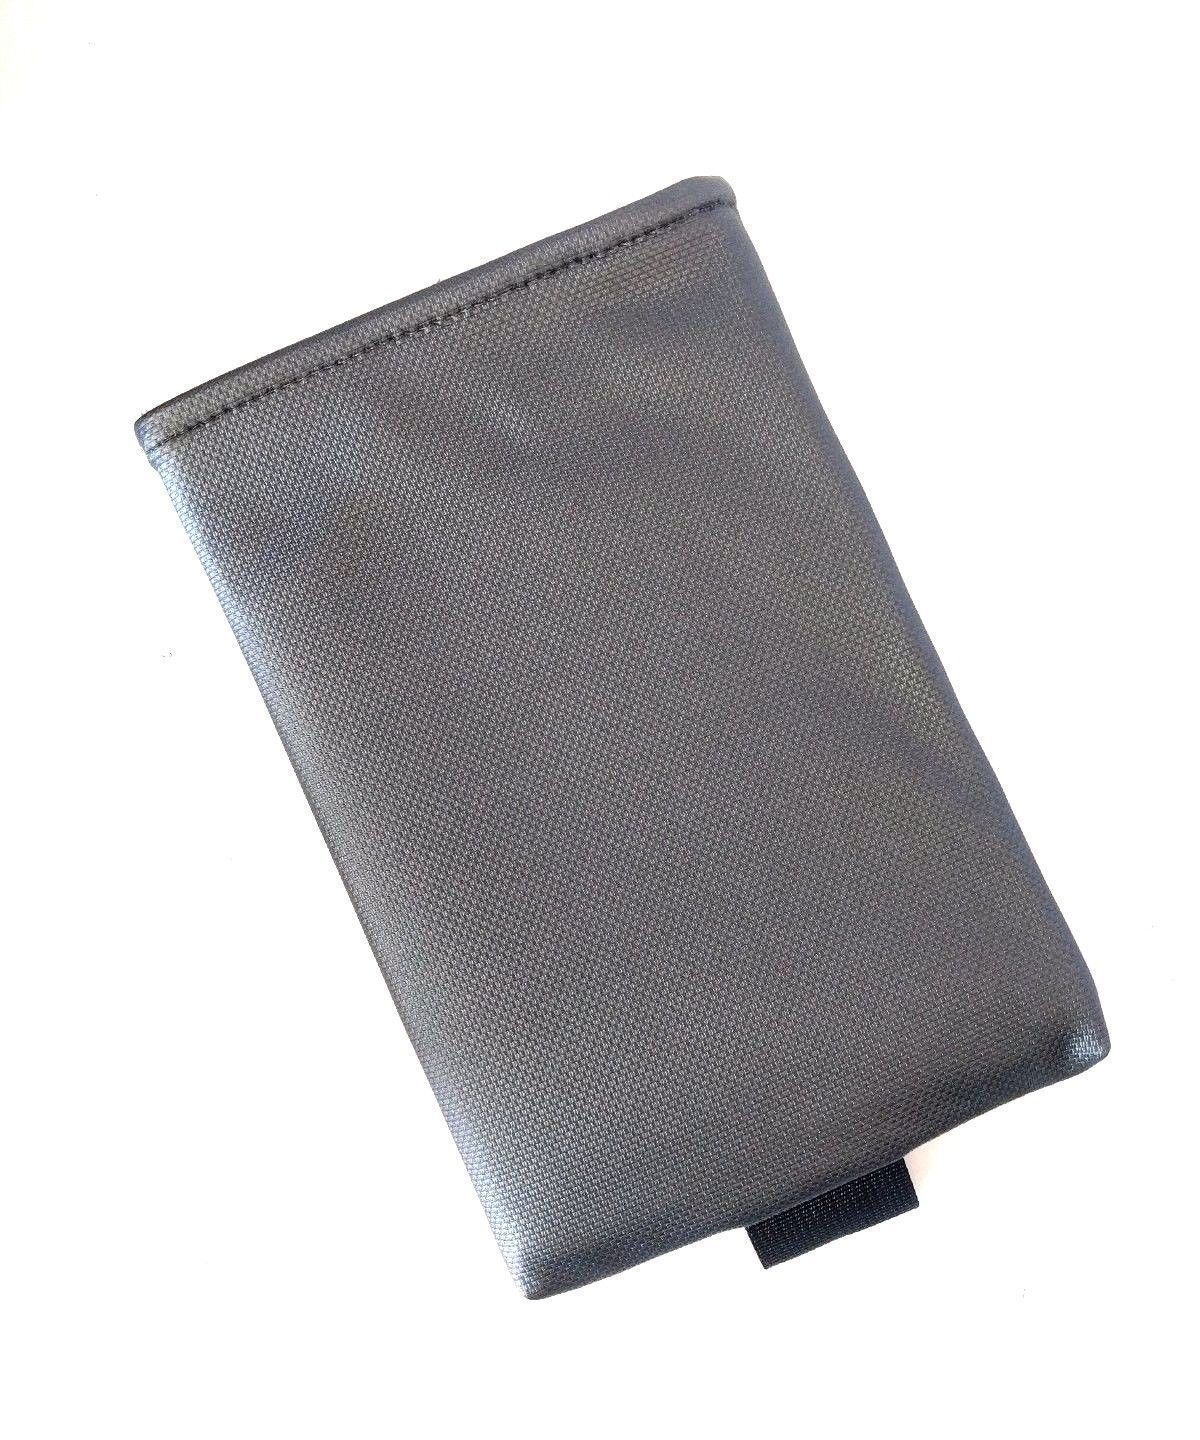 "Primary image for Waterfield SF Bags 8"" Gray Tablet/Phone Slip Case Soft Sleeve Horizontal New"